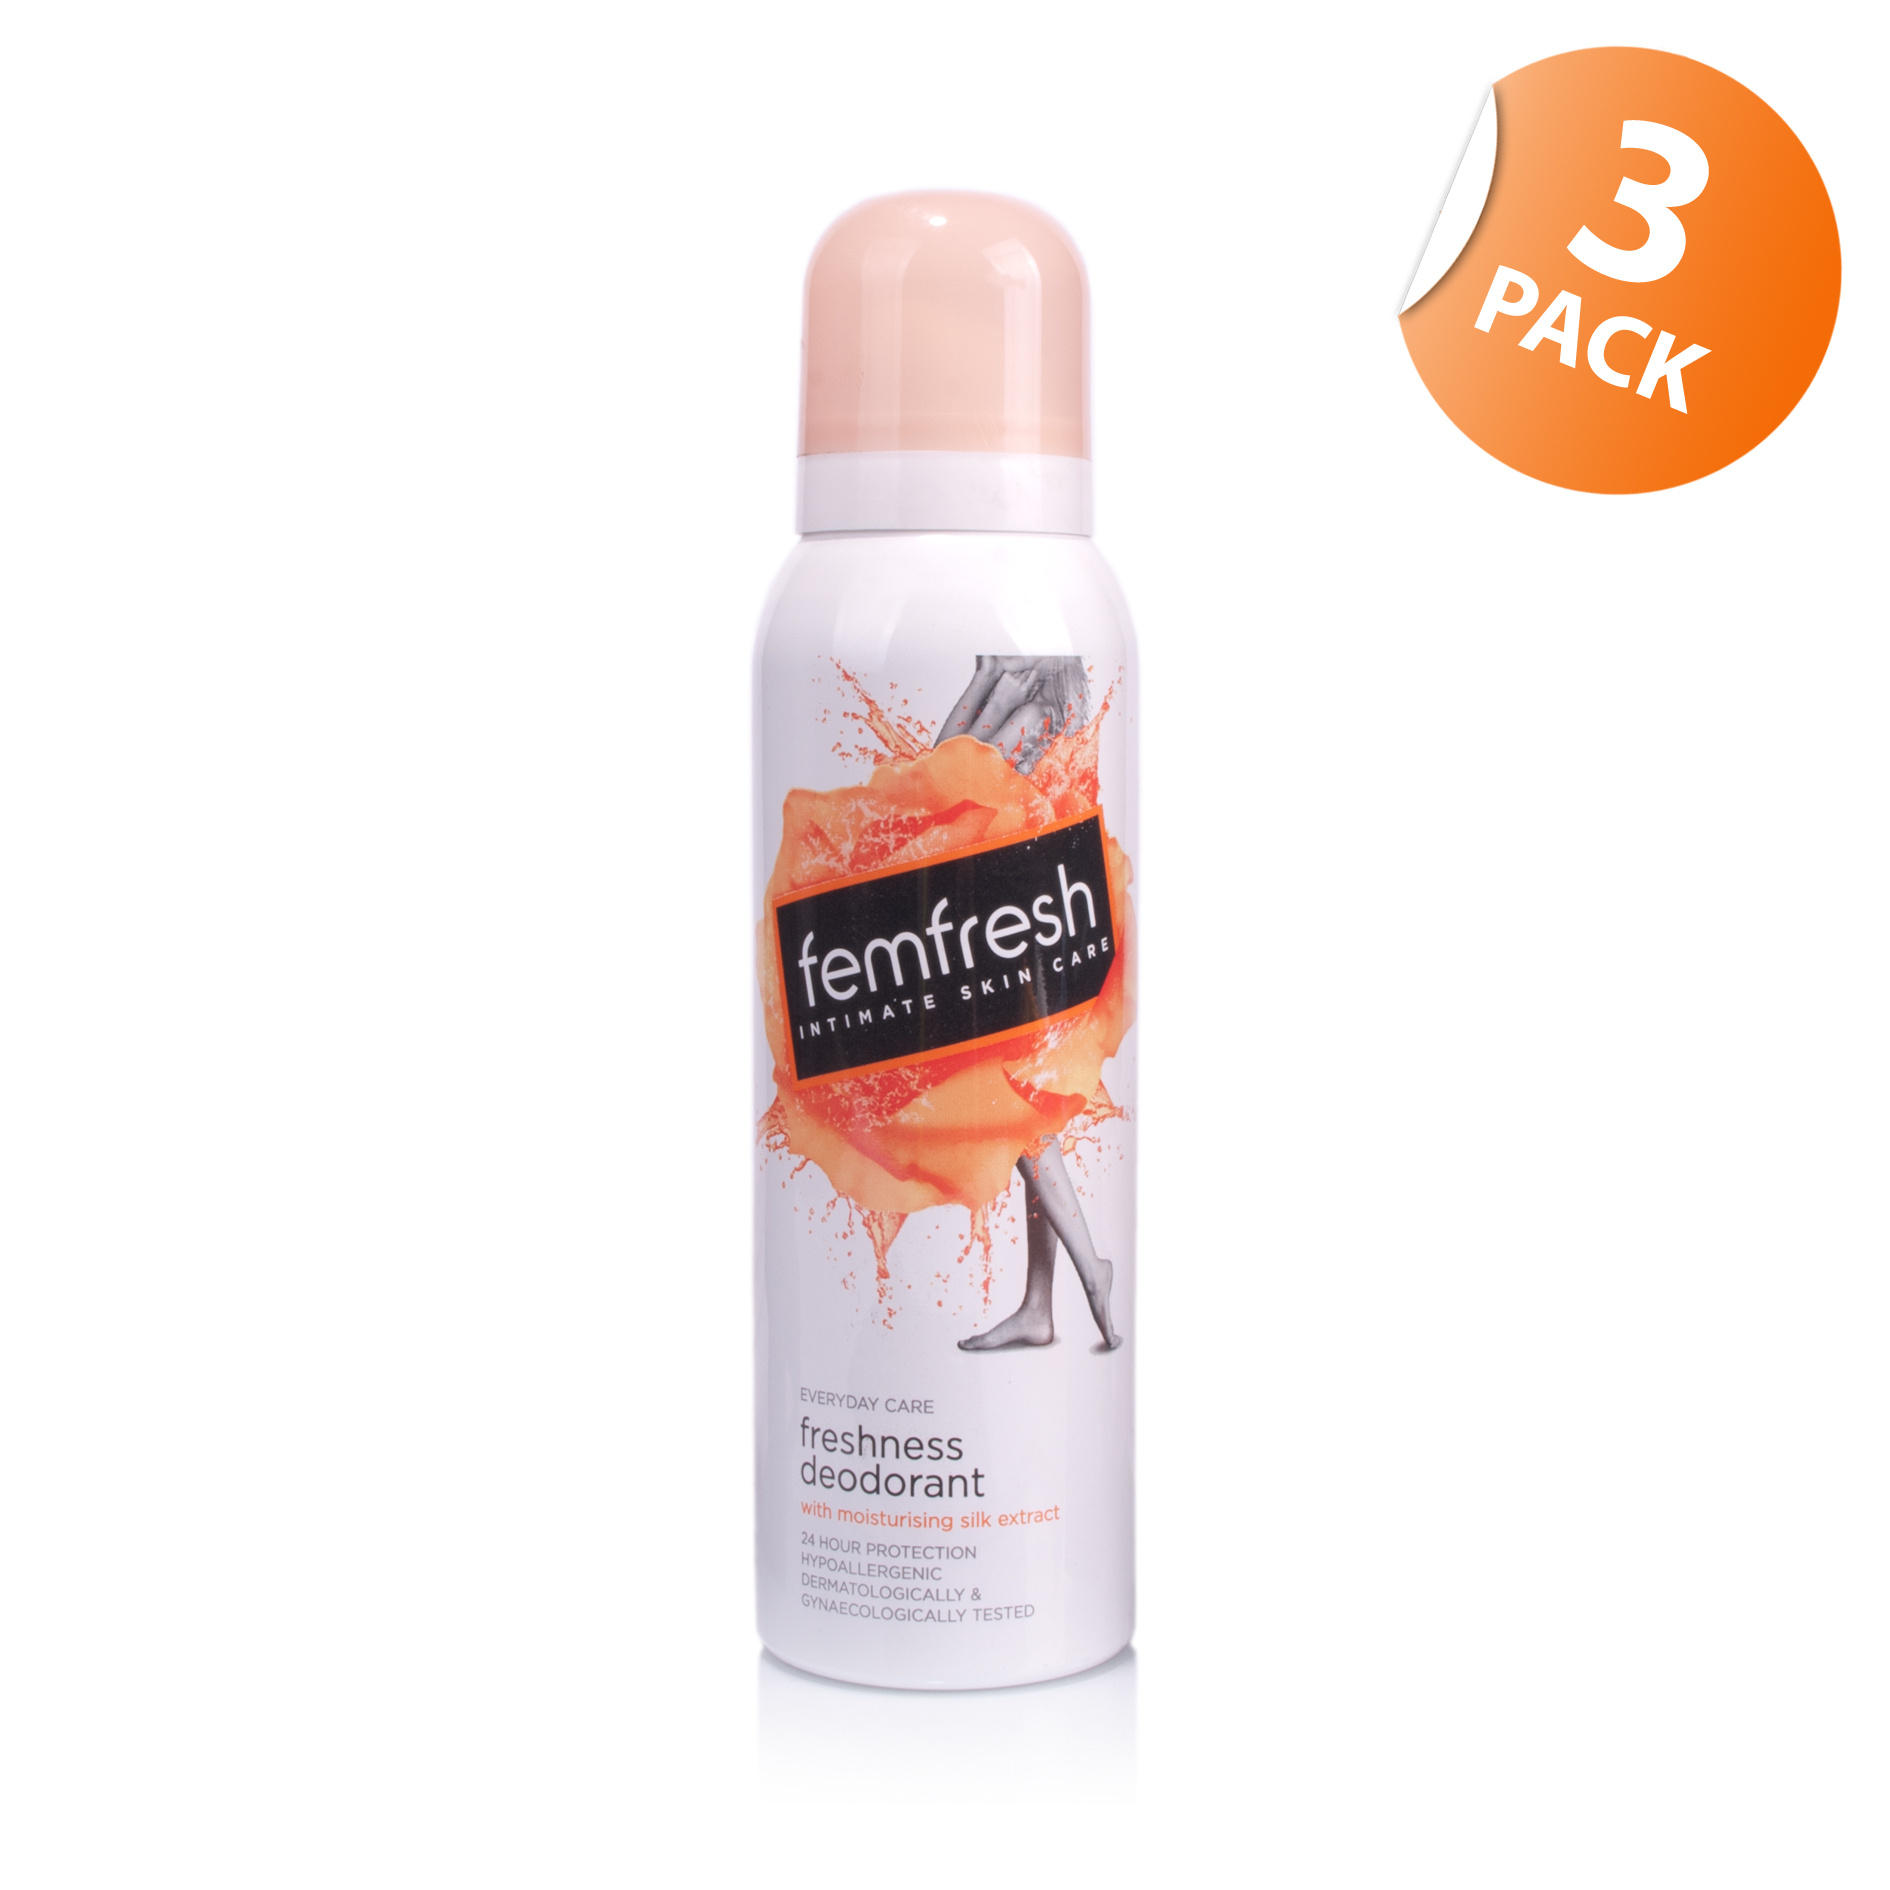 Femfresh Feminine Deodorant Spray - Triple Pack